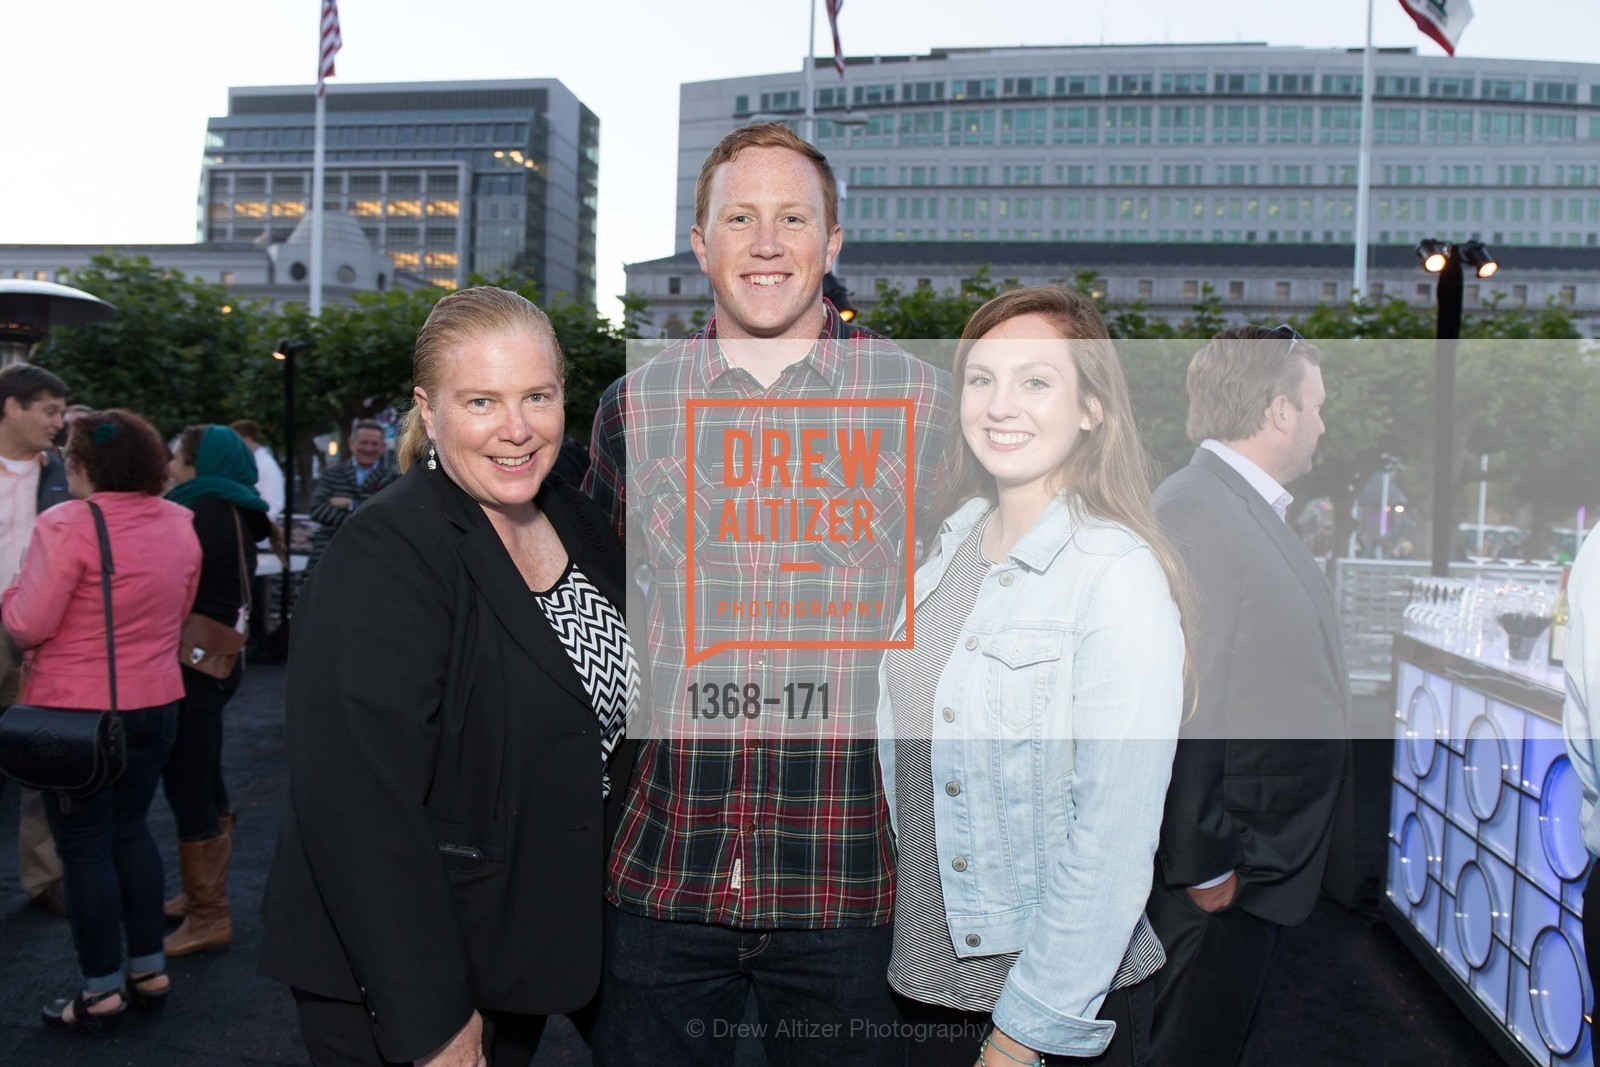 Joanne Hayes-White, Riley White, Kelly McCarthy, San Francisco City Hall Centennial Celebration, Civic Center Plaza, June 18th, 2015,Drew Altizer, Drew Altizer Photography, full-service agency, private events, San Francisco photographer, photographer california